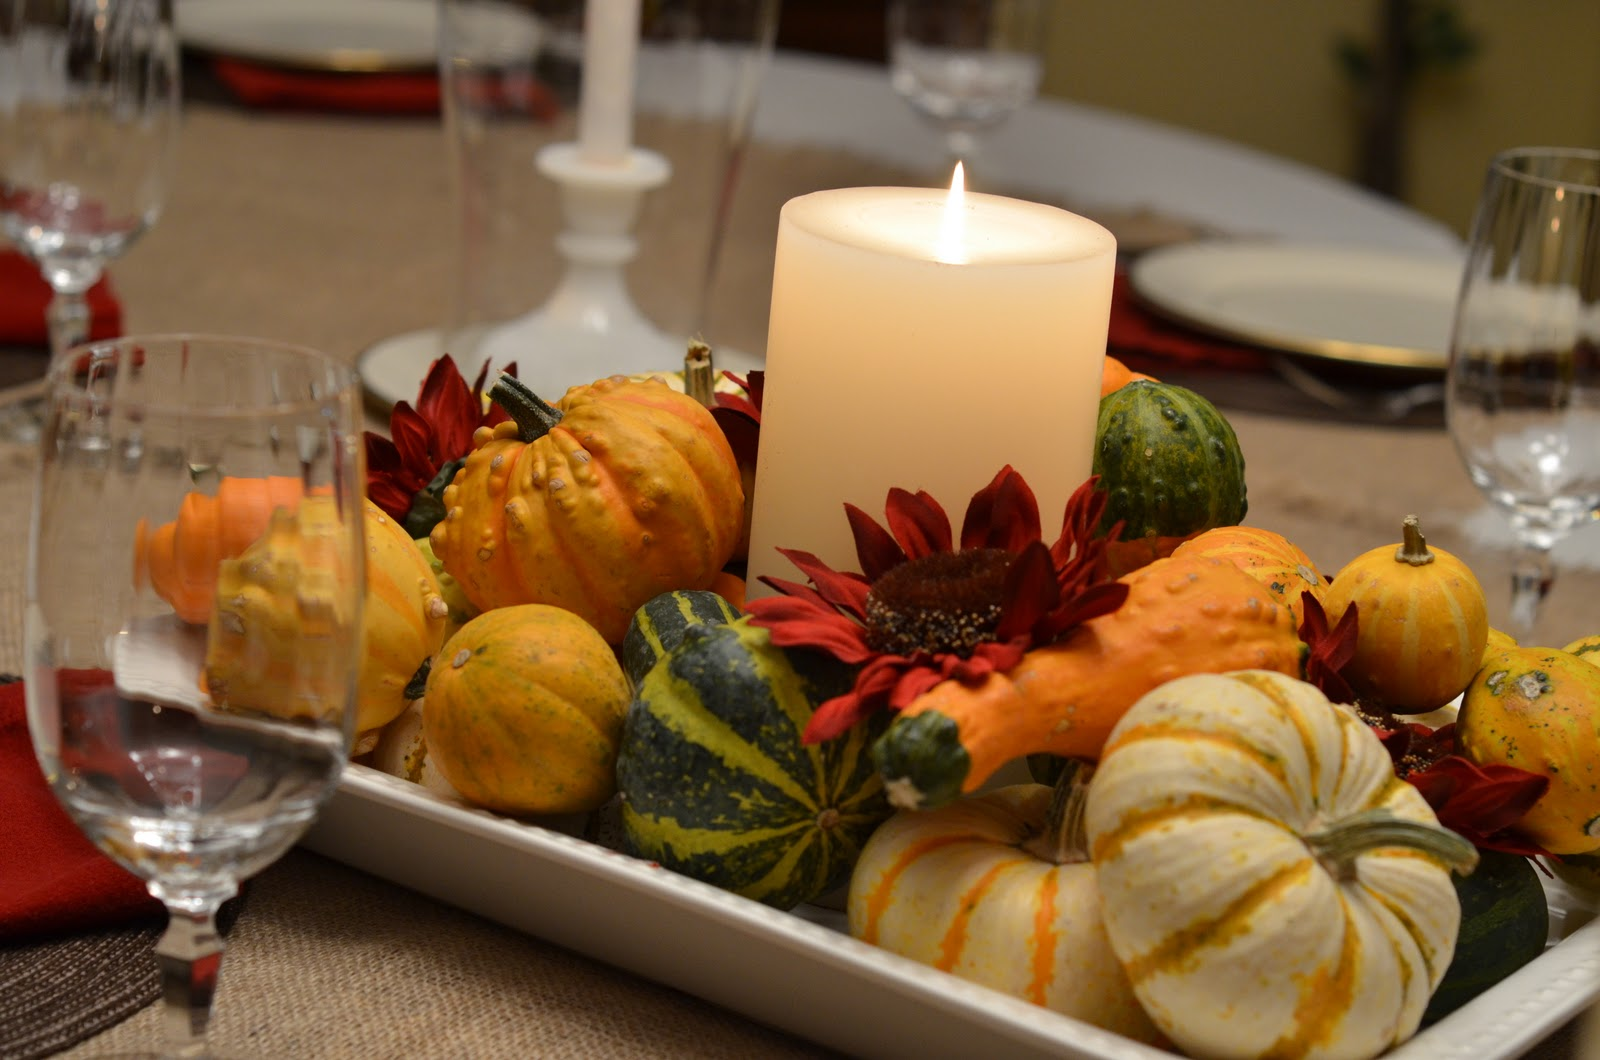 Incredible Decorating Thanksgiving Table Tips And Tricks Interior Download Free Architecture Designs Sospemadebymaigaardcom